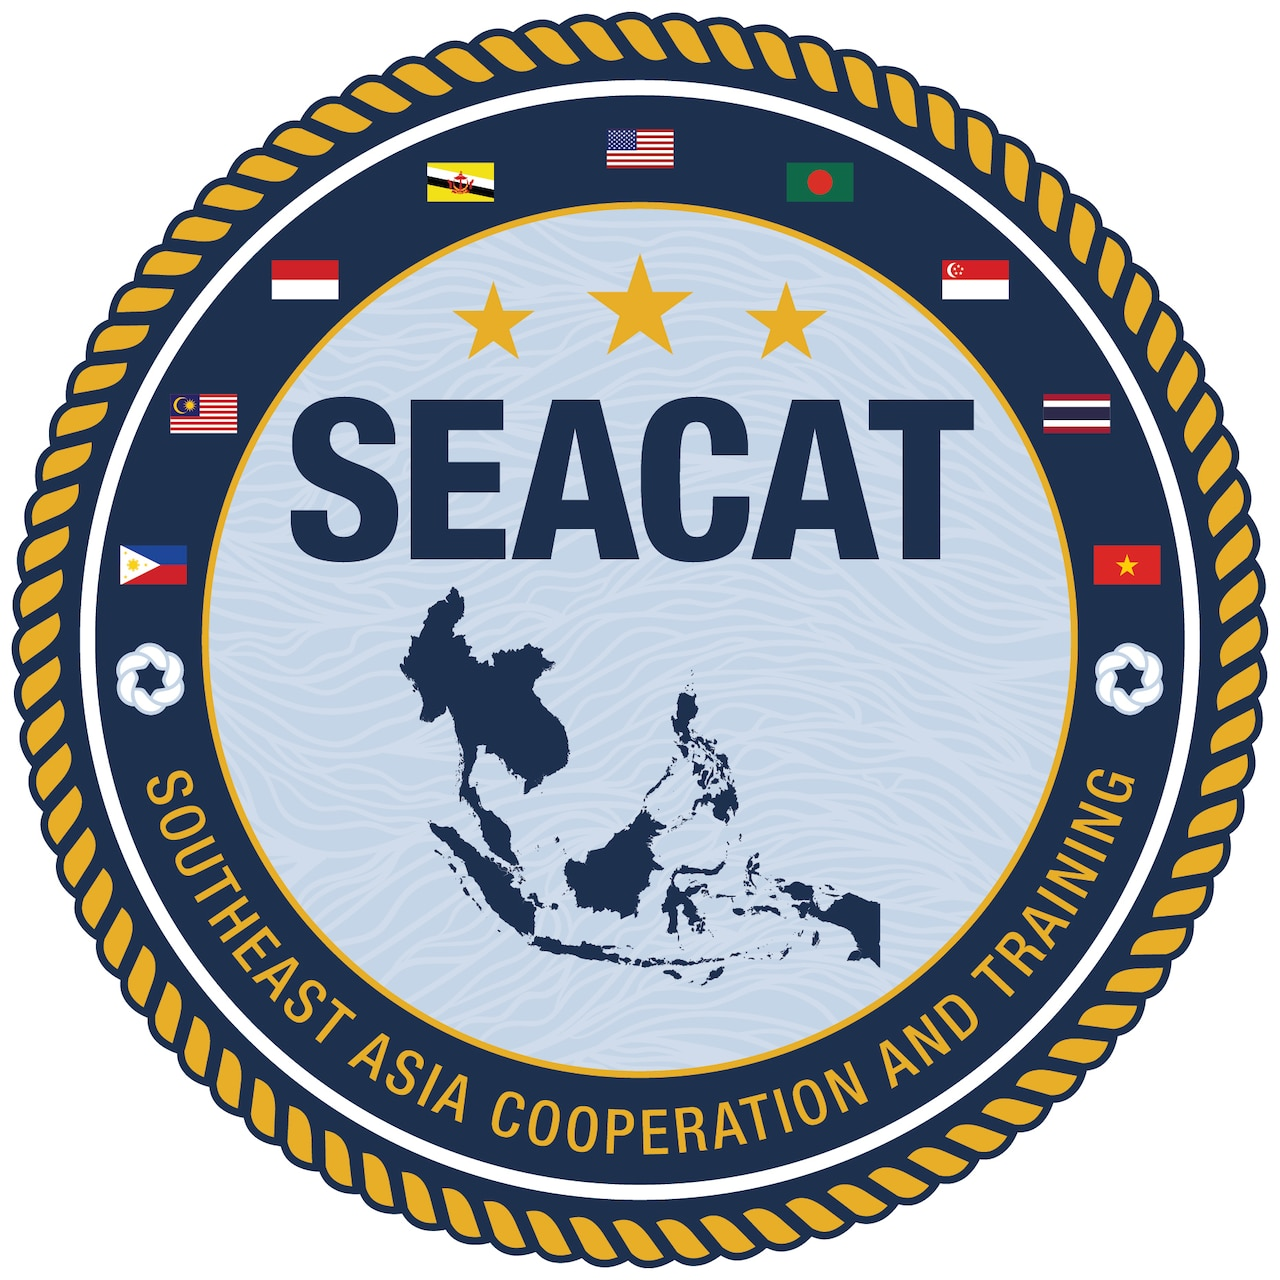 210810-N-PL200-0001 SINGAPORE -- Maritime forces from 21 Indo-Pacific partner nations including the U.S. Navy, U.S interagencies, and international organizations began the 20th iteration of Southeast Asia Cooperation and Training (SEACAT). In its 20th year, SEACAT is a multilateral exercise designed to enhance cooperation among 21 participating Southeast Asian countries and provide mutual support and a common goal to address crises, contingencies, and illegal activities in the maritime domain in support of a free and open Indo-Pacific. (U.S. Navy courtesy image)